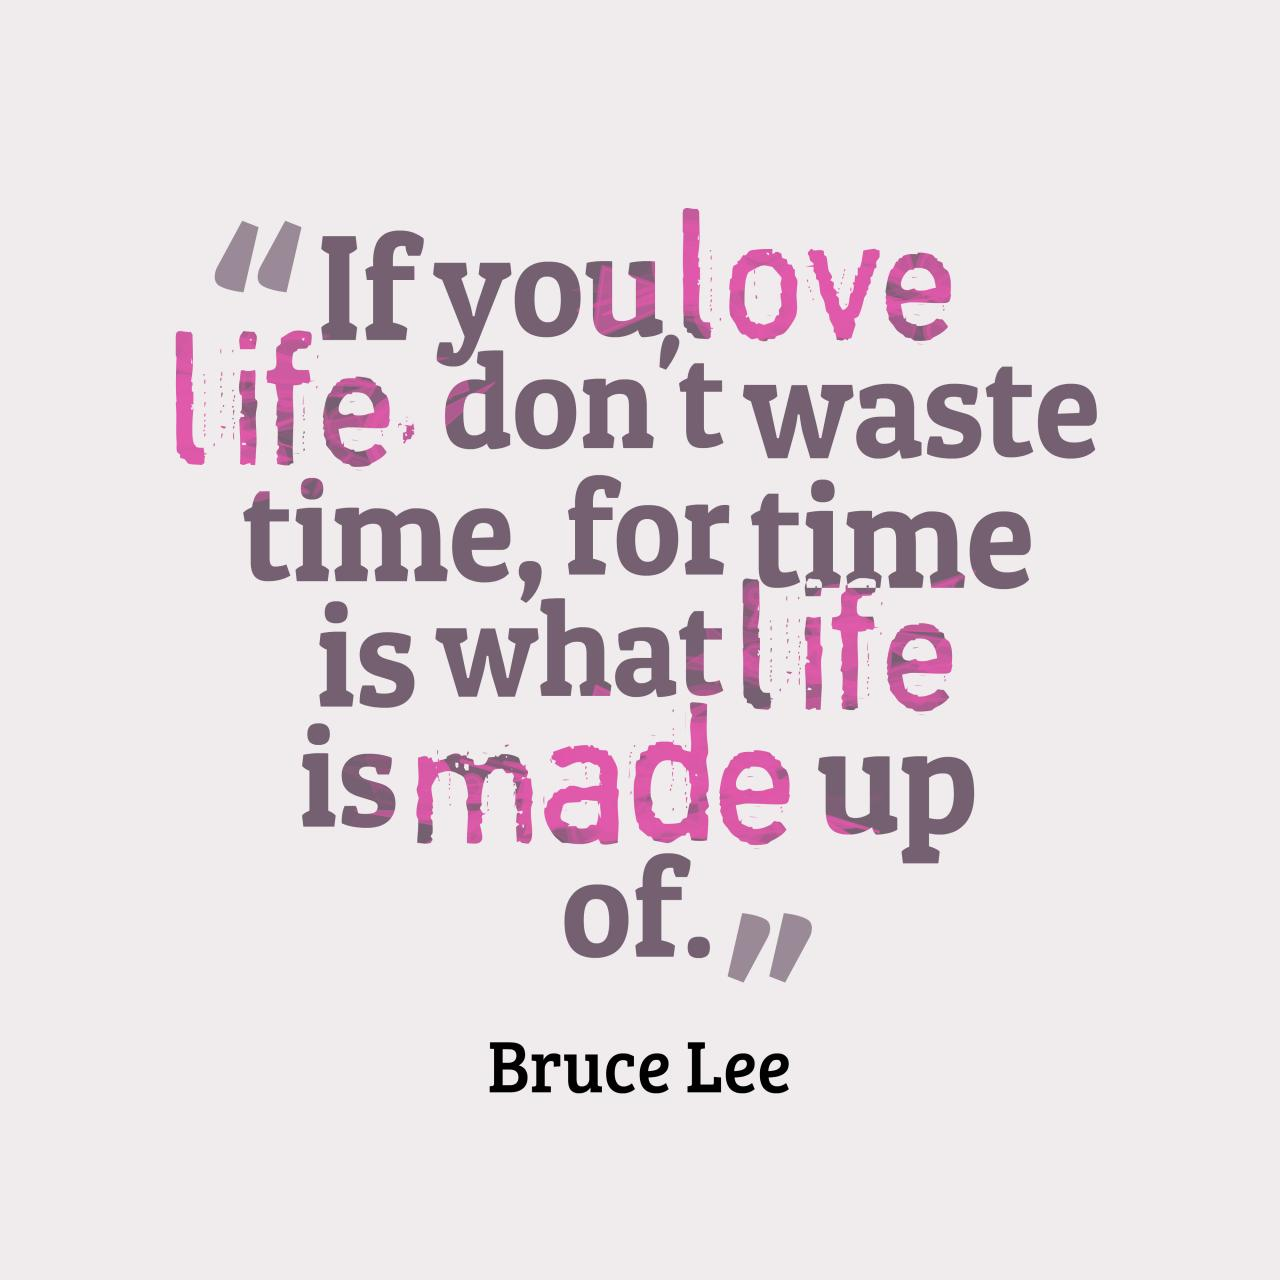 Quotes About Time And Love Quotes About Time And Love Love Quotes Waste Time